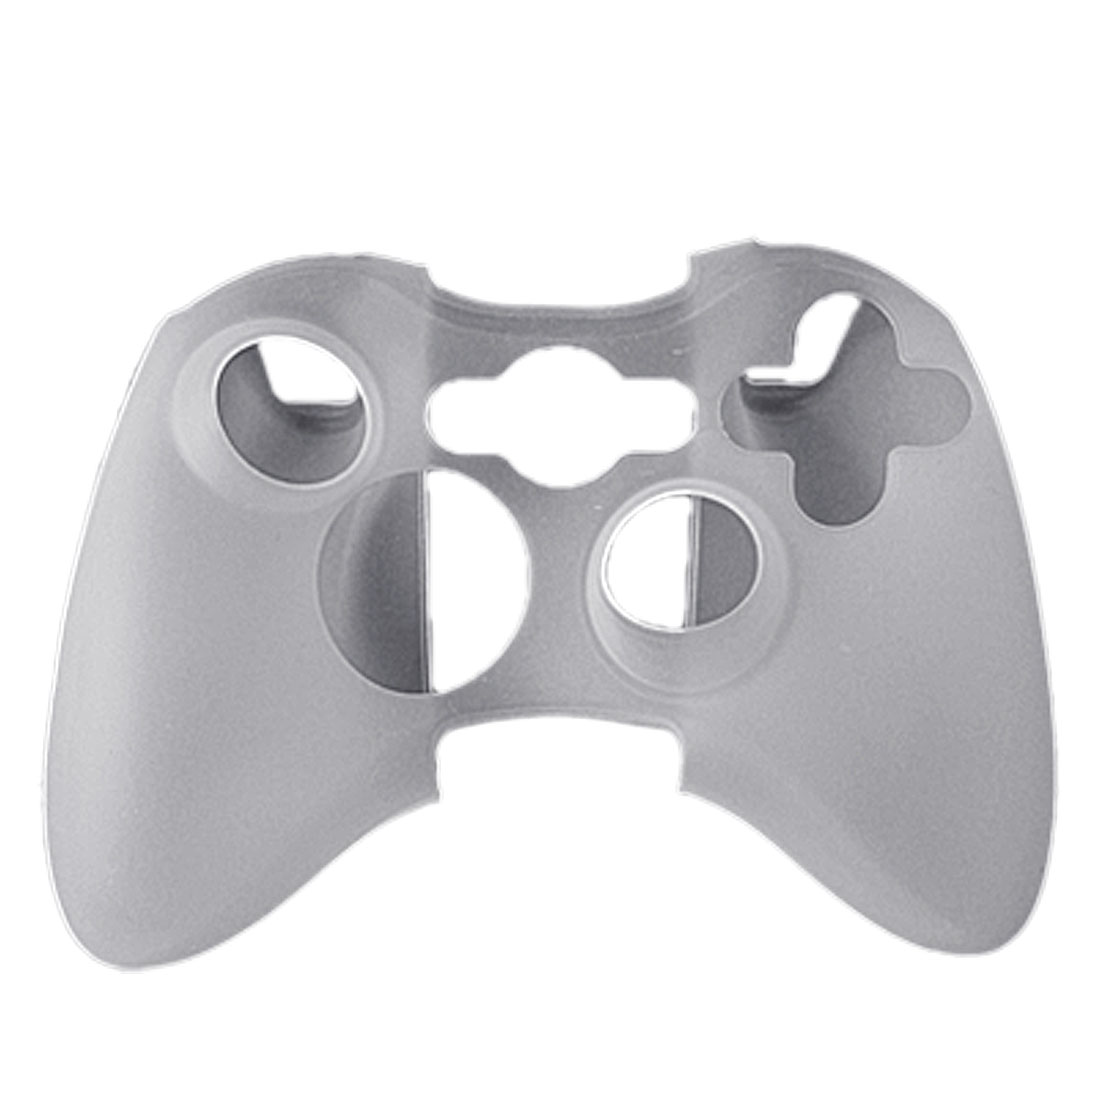 White Silicone Skin Case Cover for Xbox 360 Controller